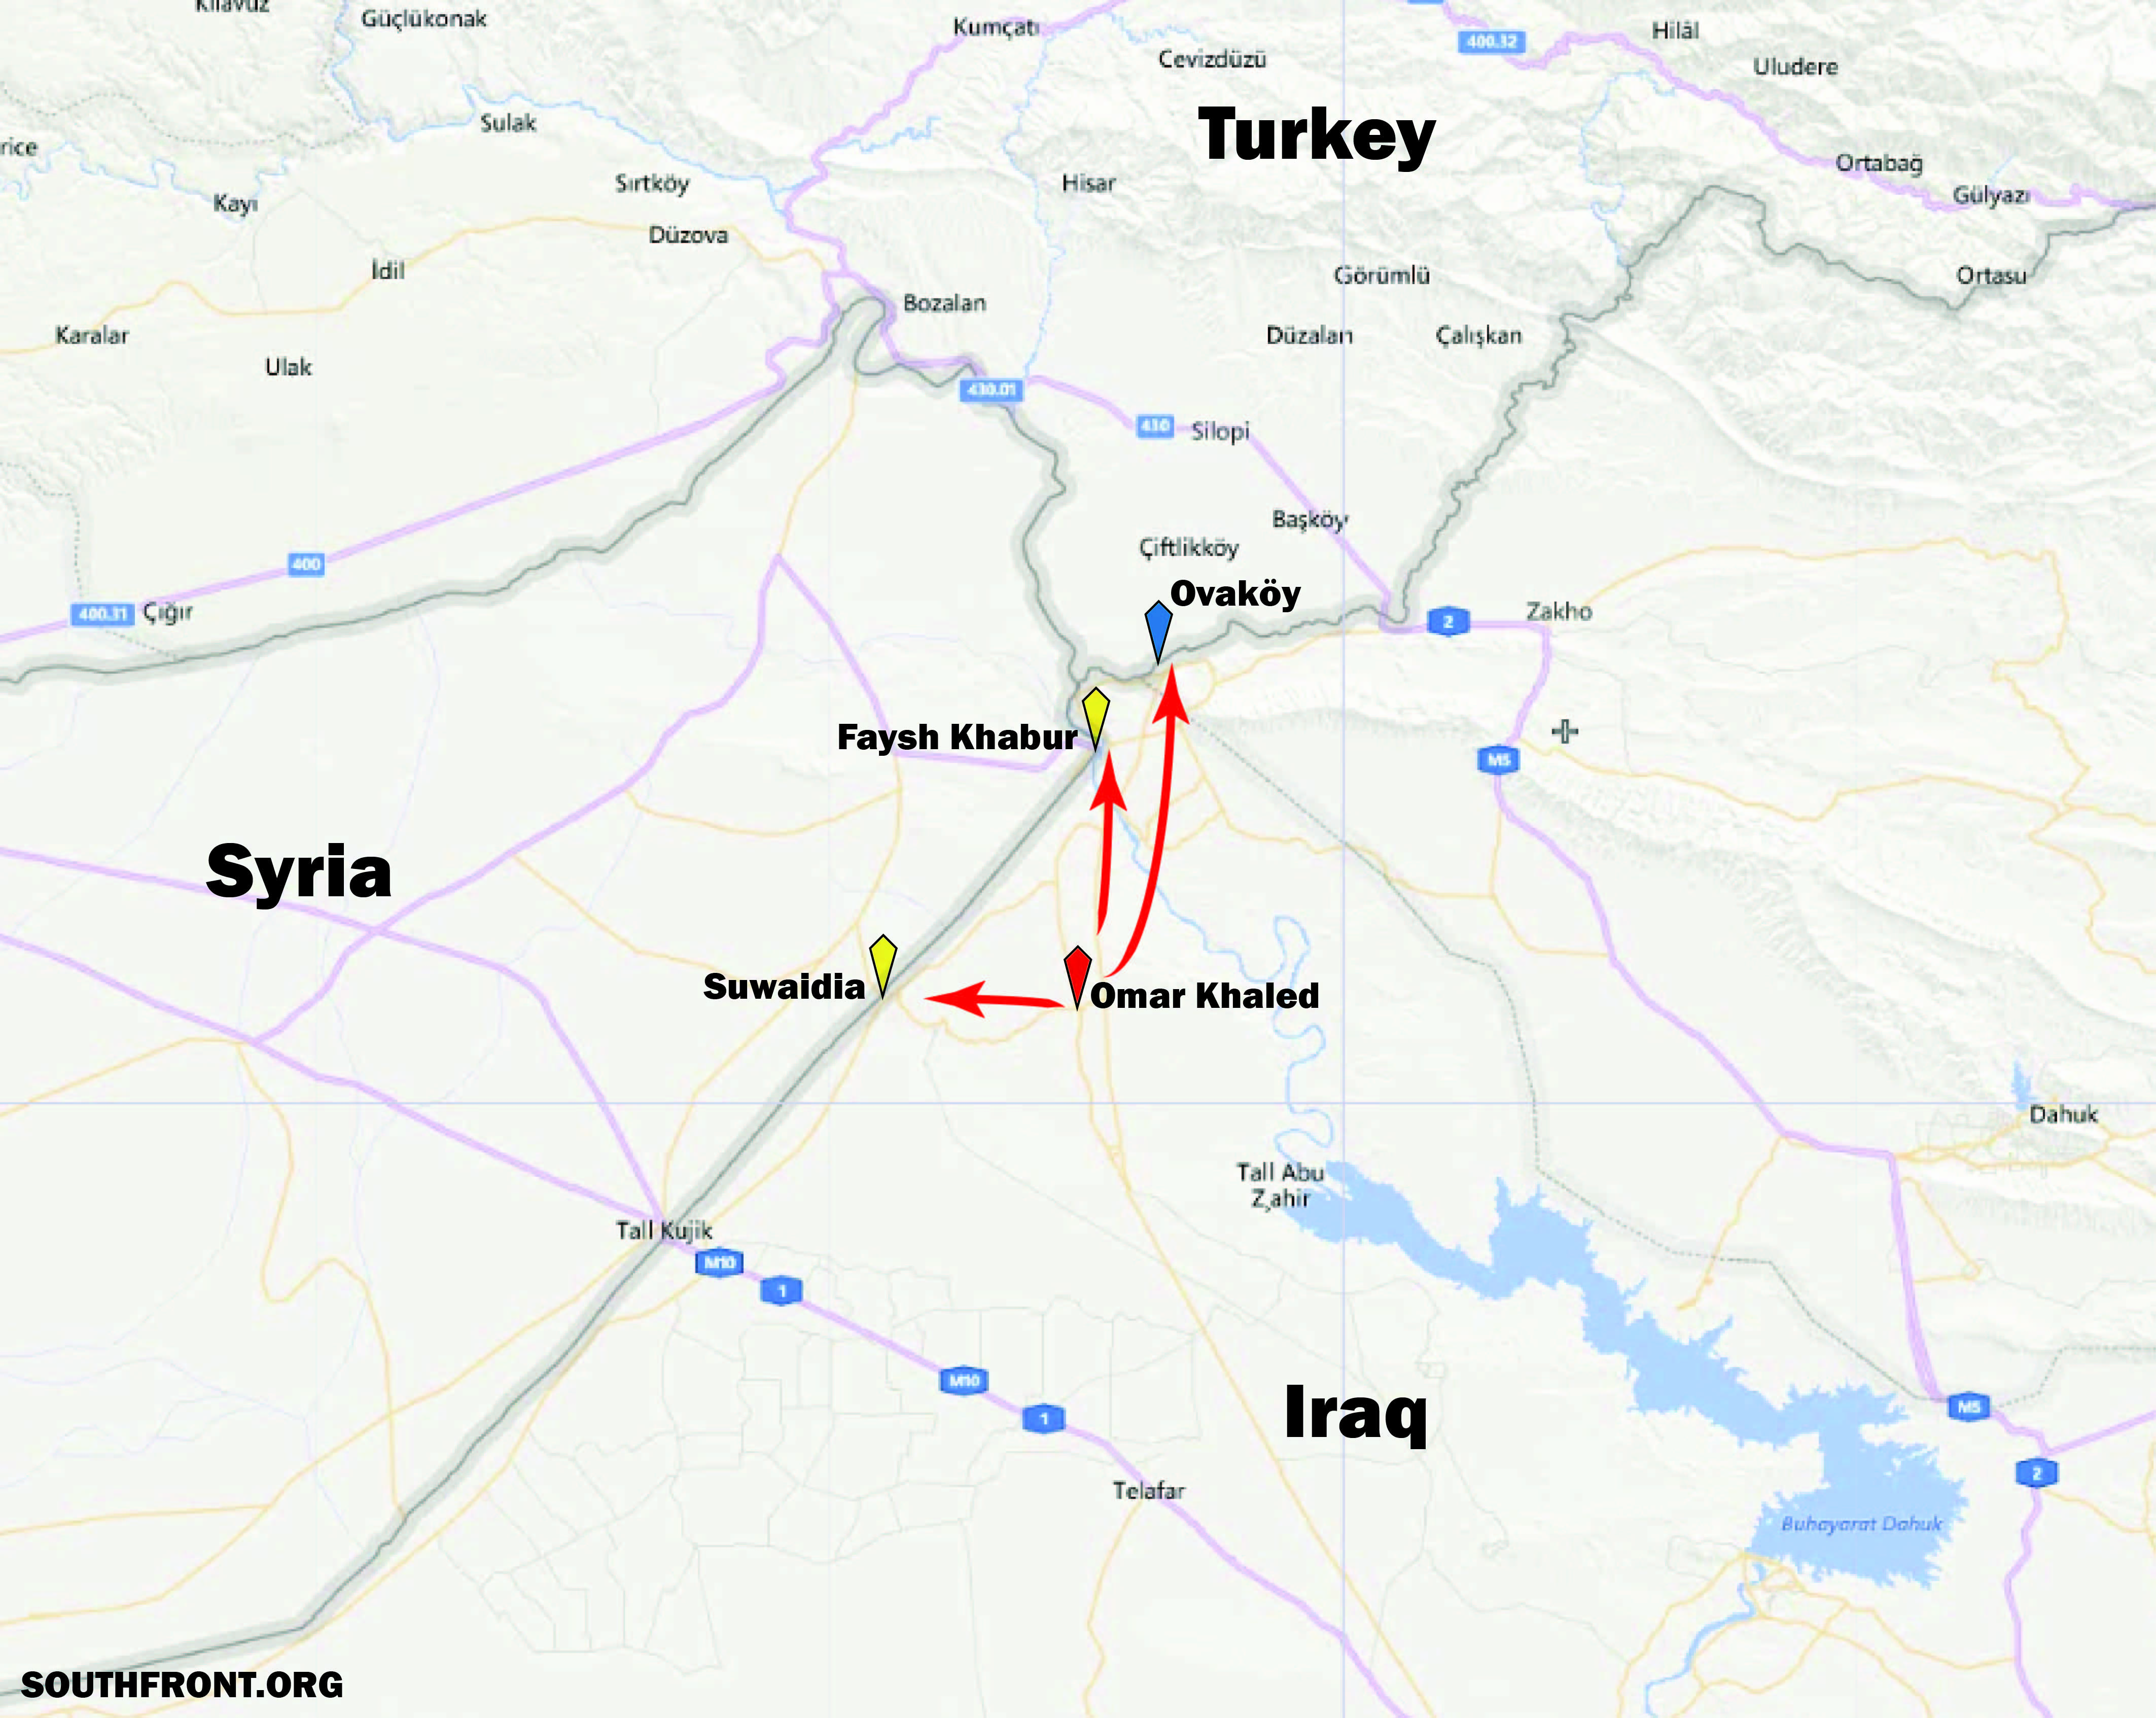 Turkey And Iraqi Government Agree To Open New Border Crossing, As Kurdish-Arab Tensions Heat Up In Northern Iraq